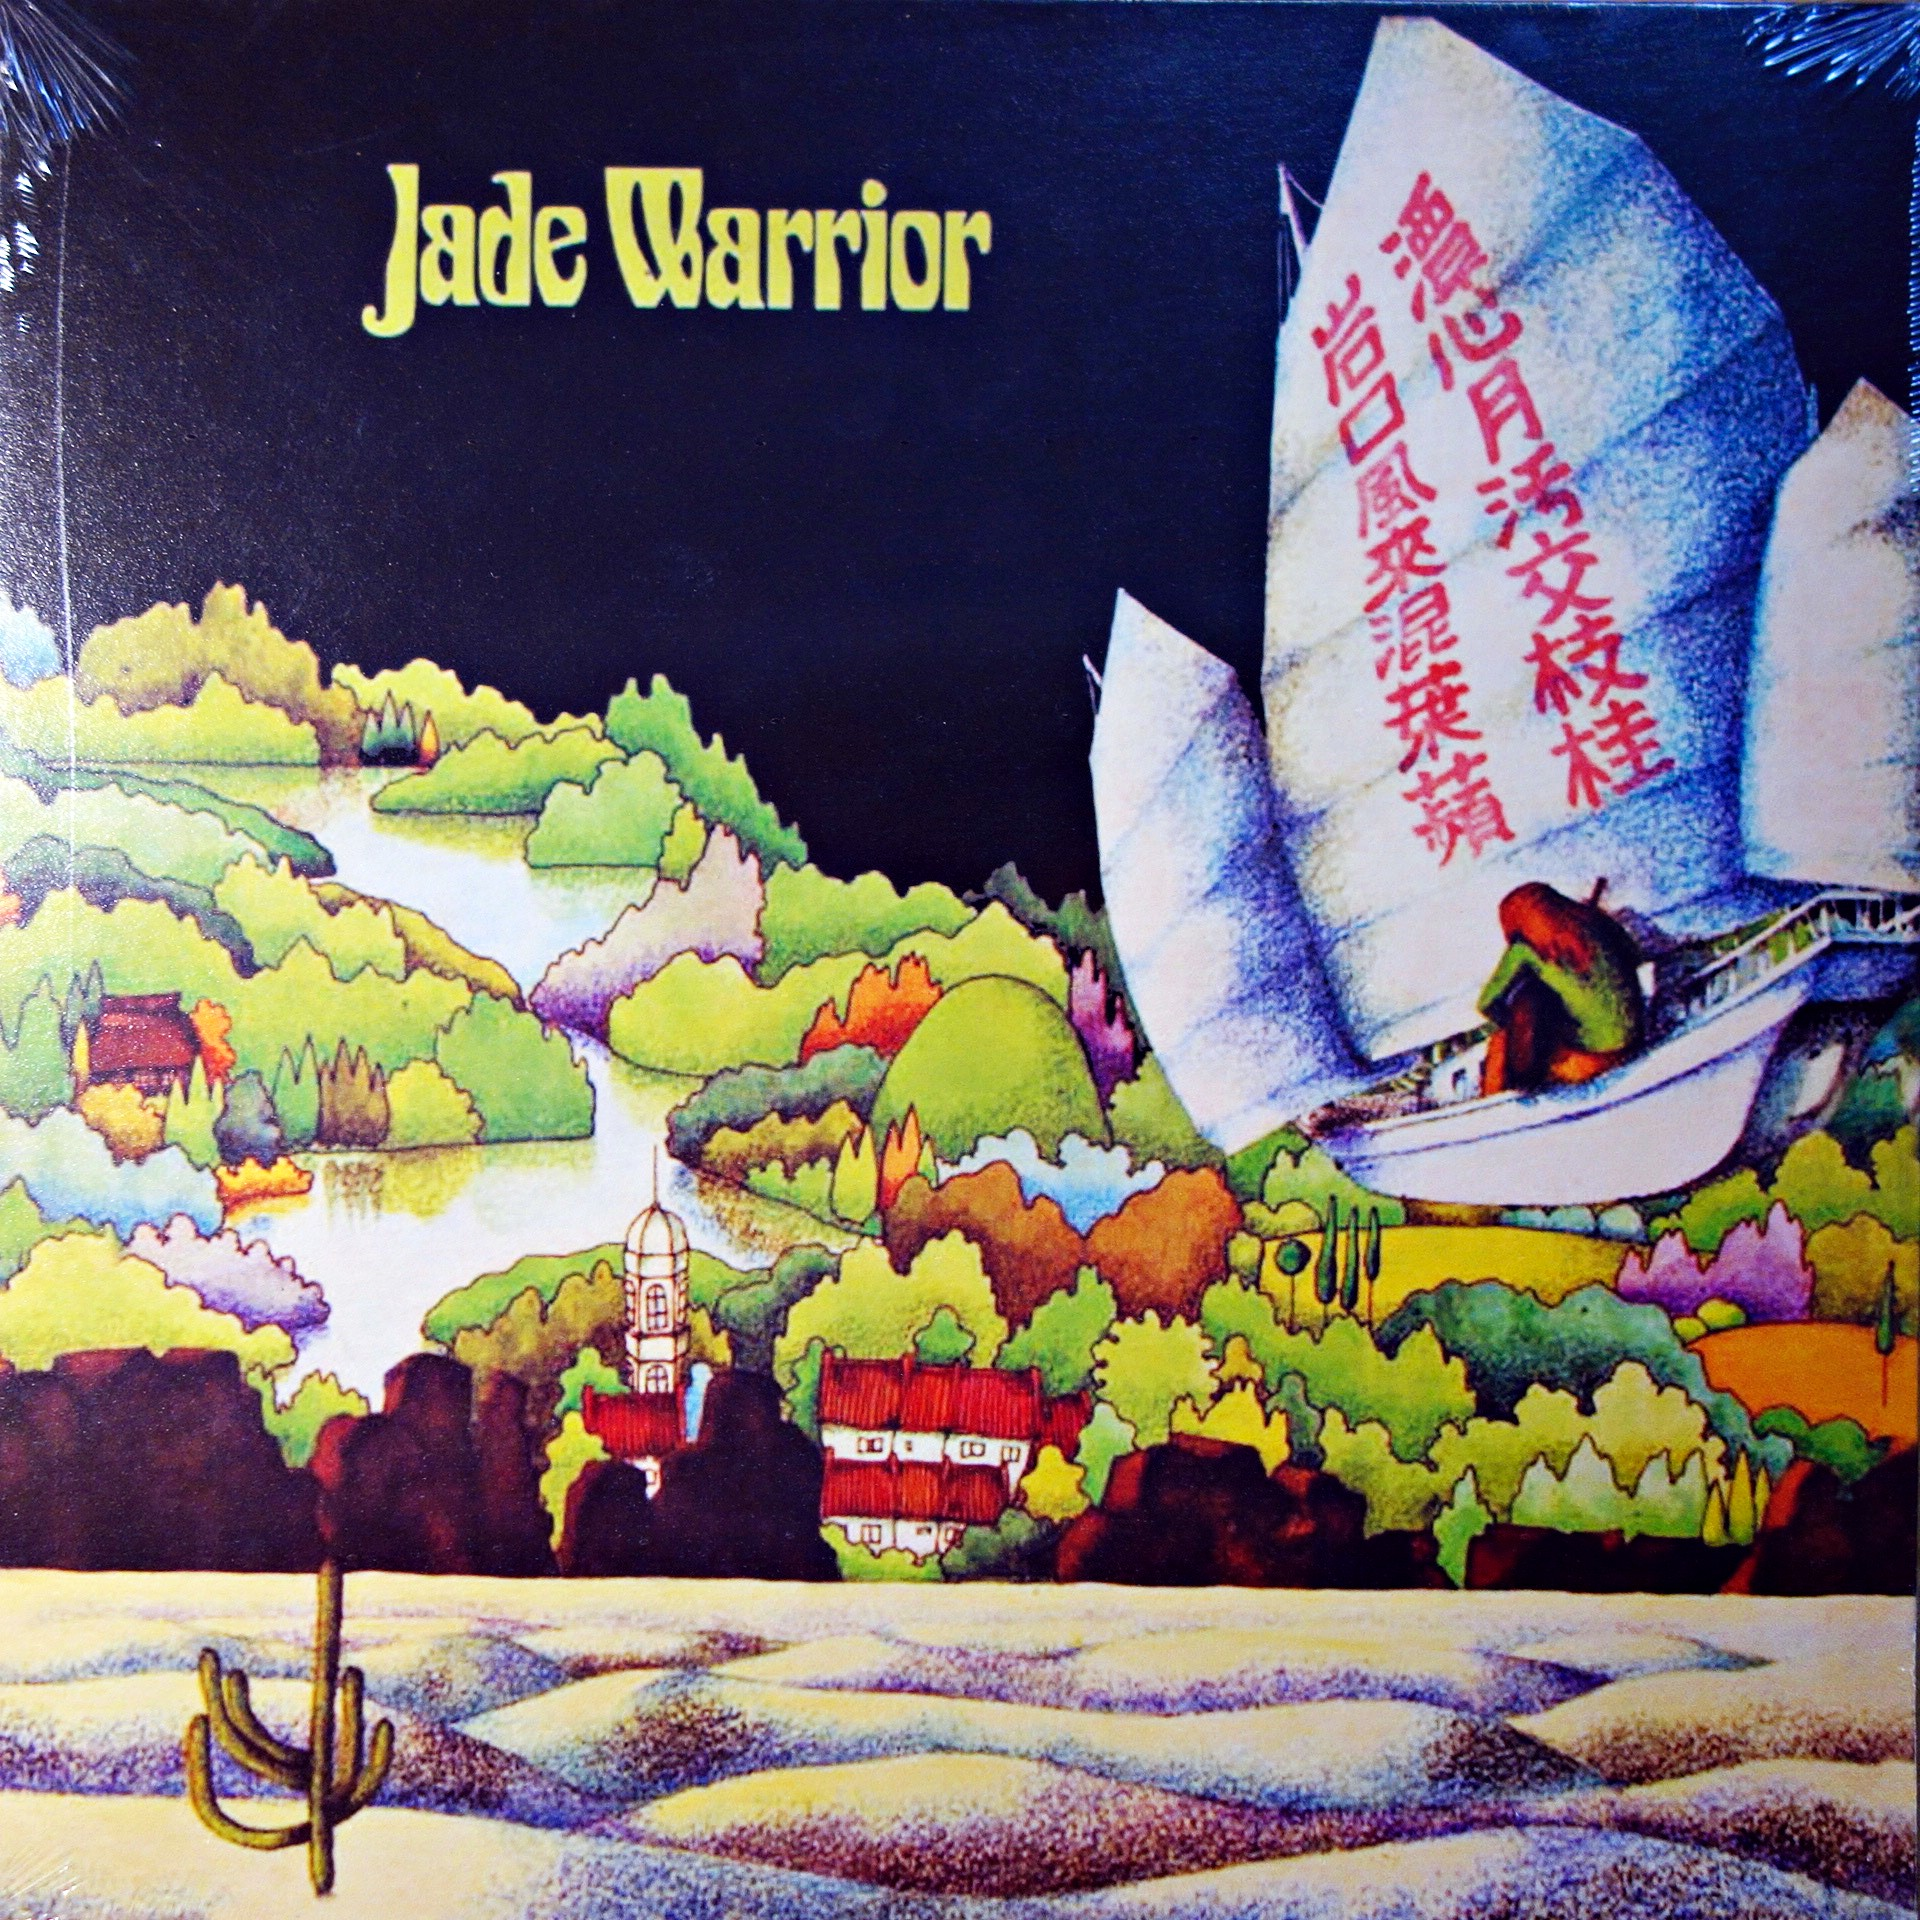 LP Jade Warrior ‎– Jade Warrior